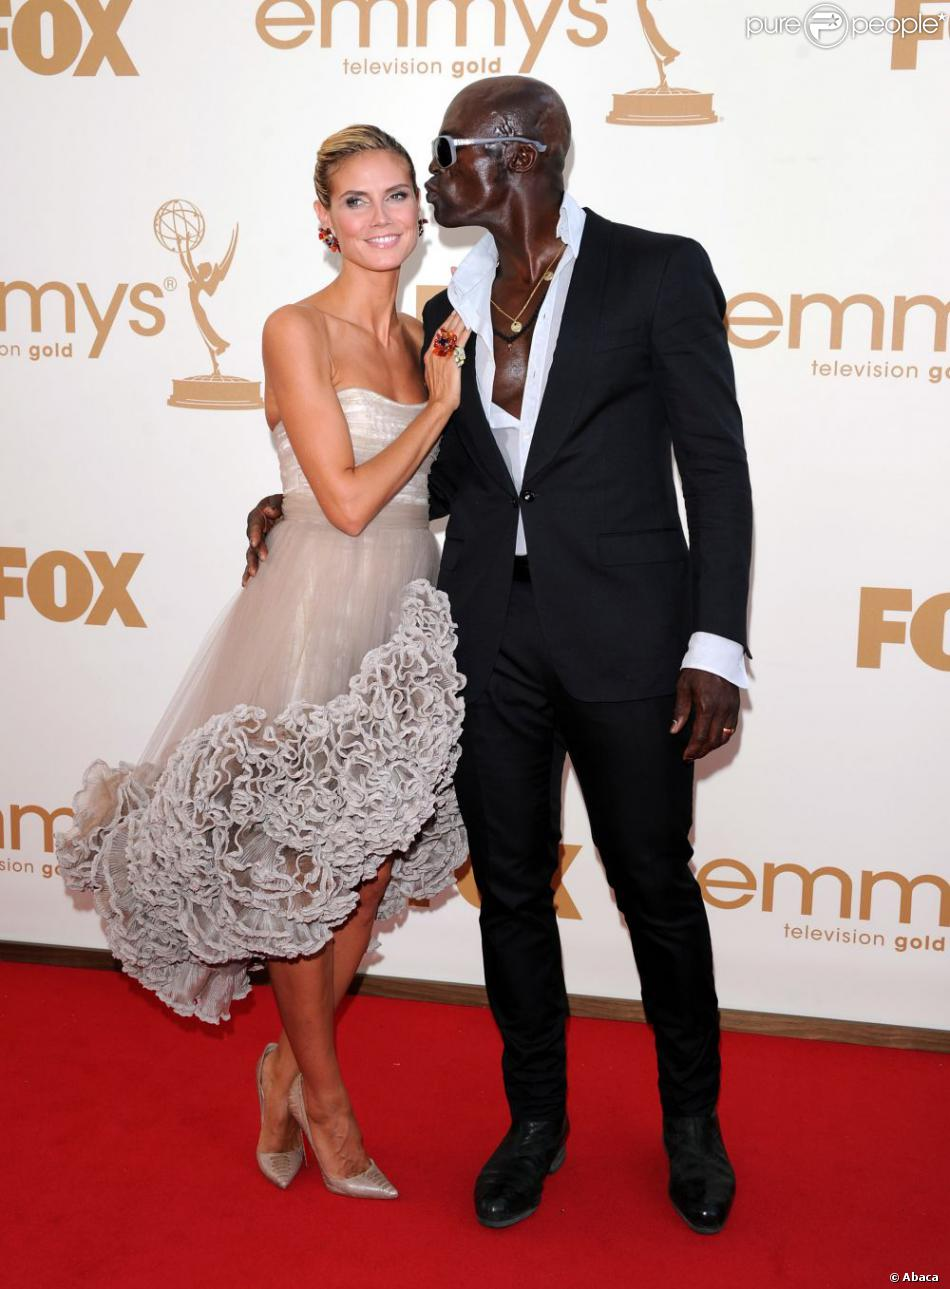 Heidi Klum et Seal lors des Emmy Awards 2011 à Los Angeles. Le 18 septembre 2012.